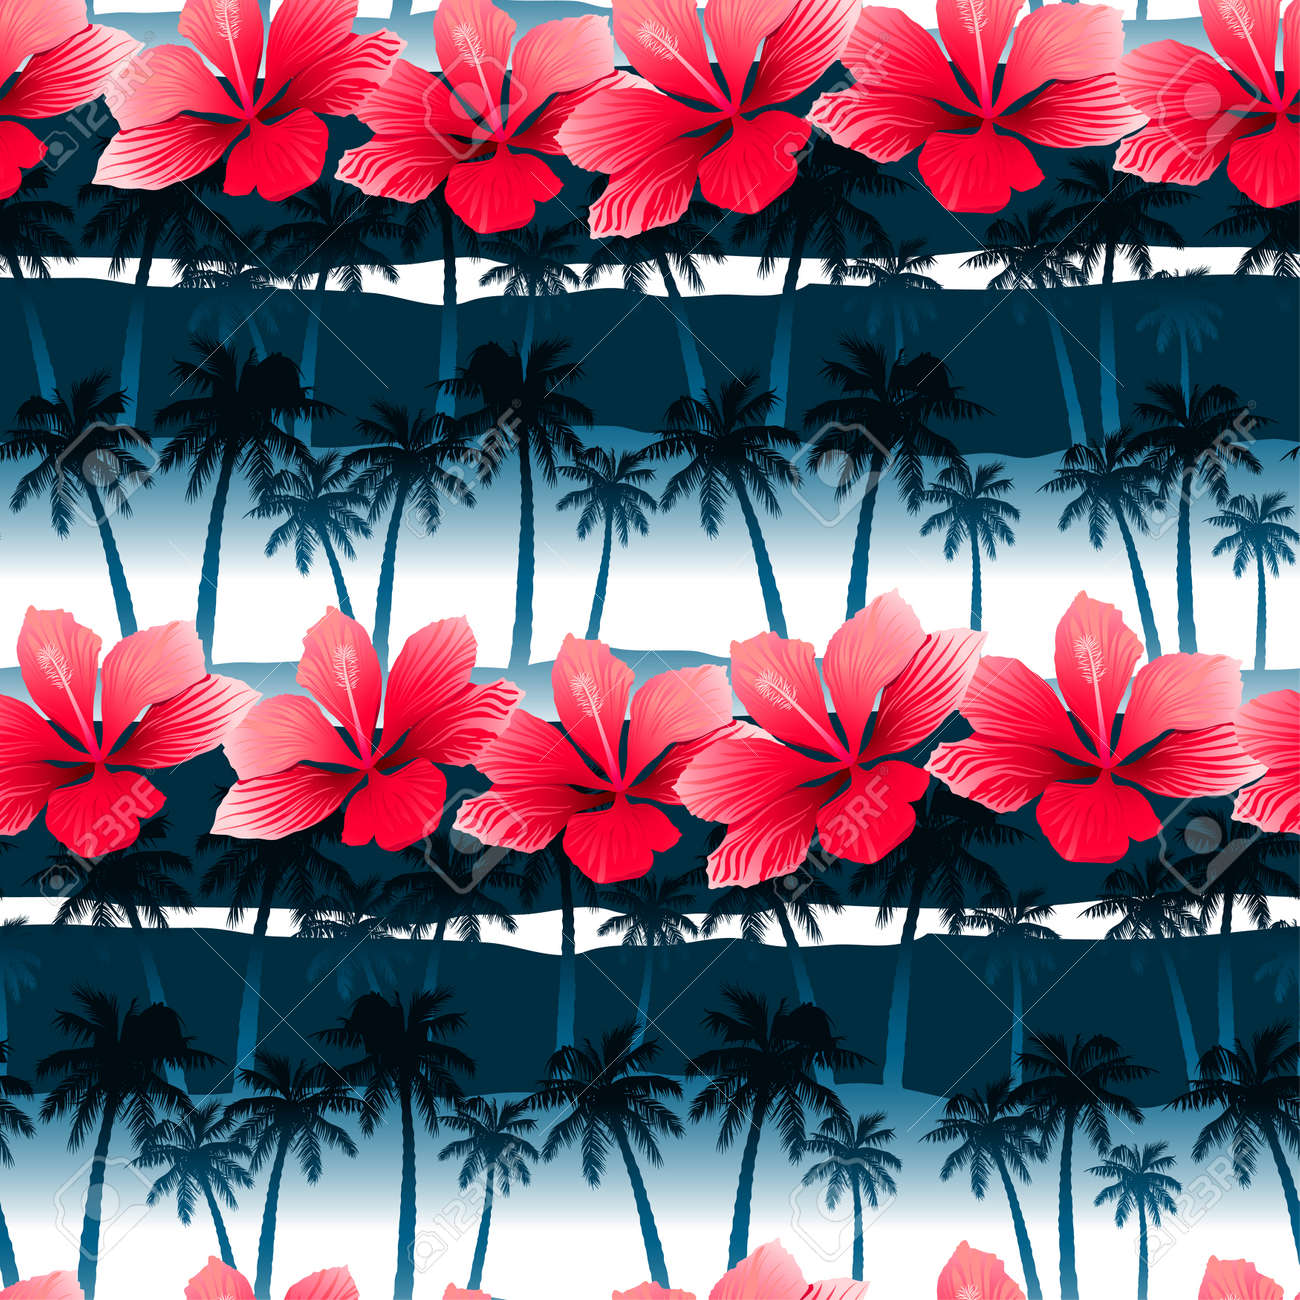 Tropical Hibiscus Flowers In A Seamless Pattern With Blue Palm